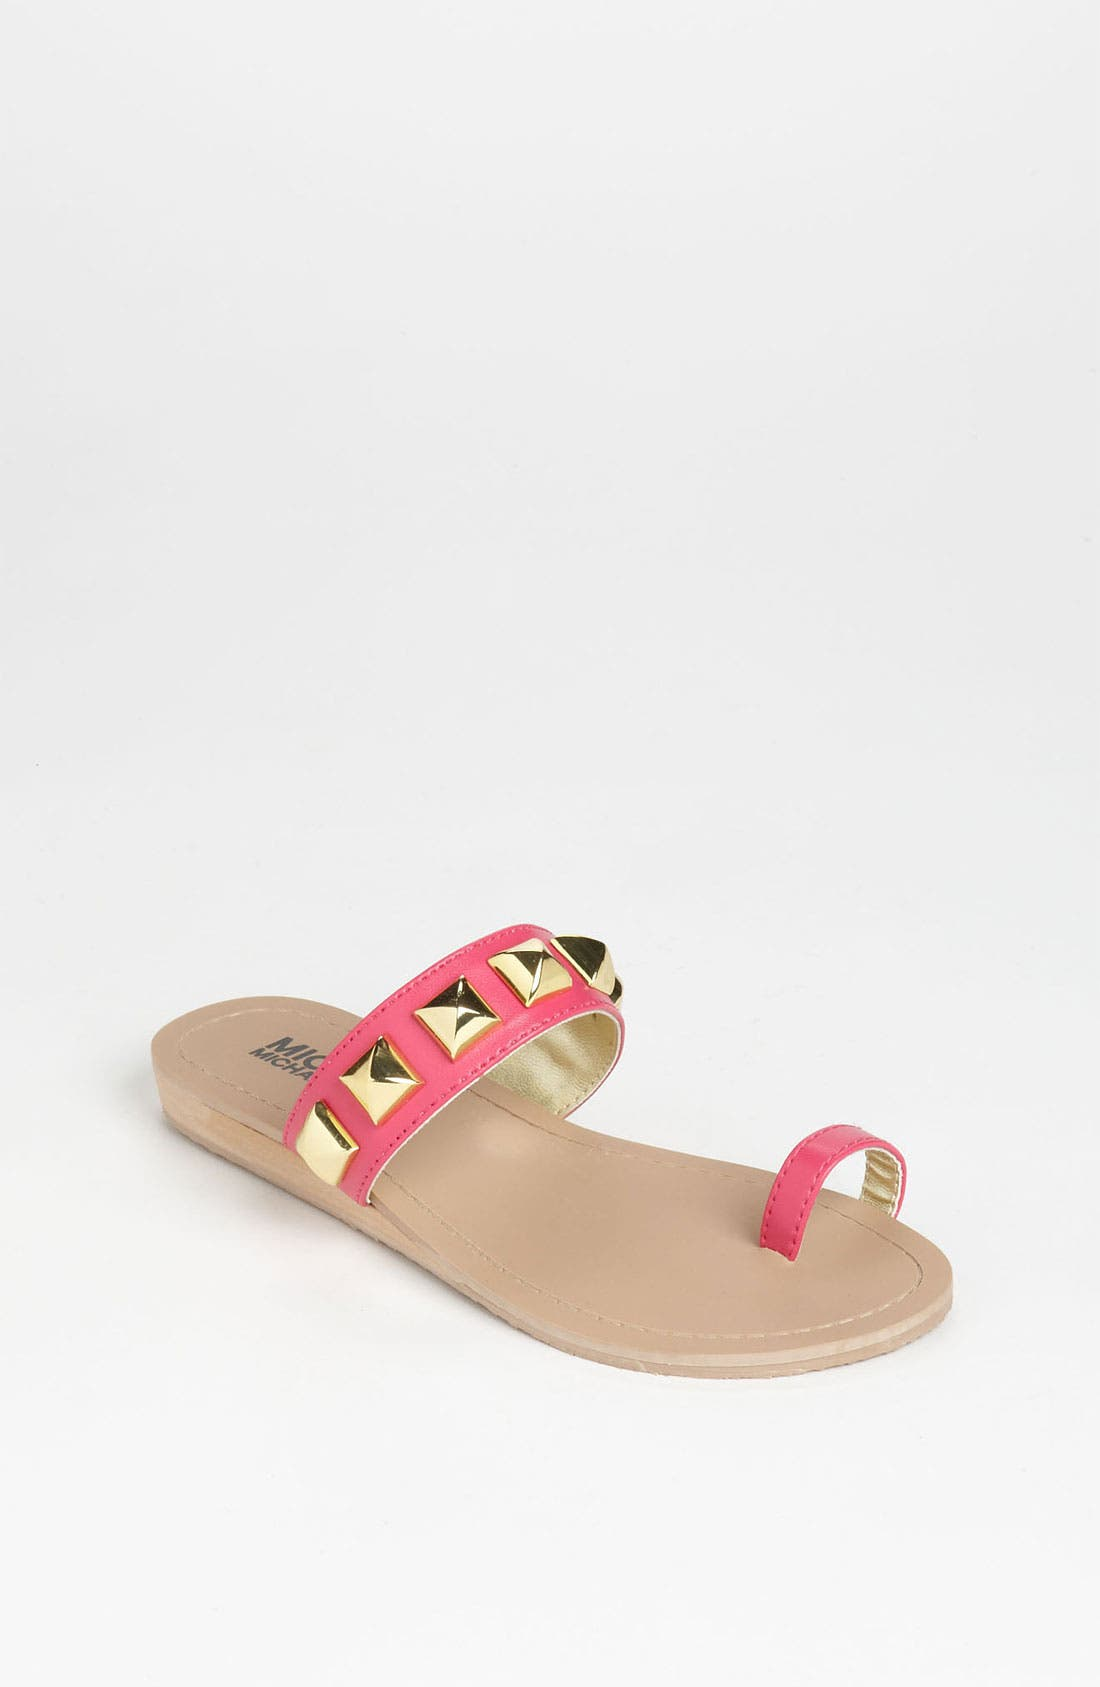 Main Image - MICHAEL Michael Kors 'Zen' Sandal (Little Kid & Big Kid)